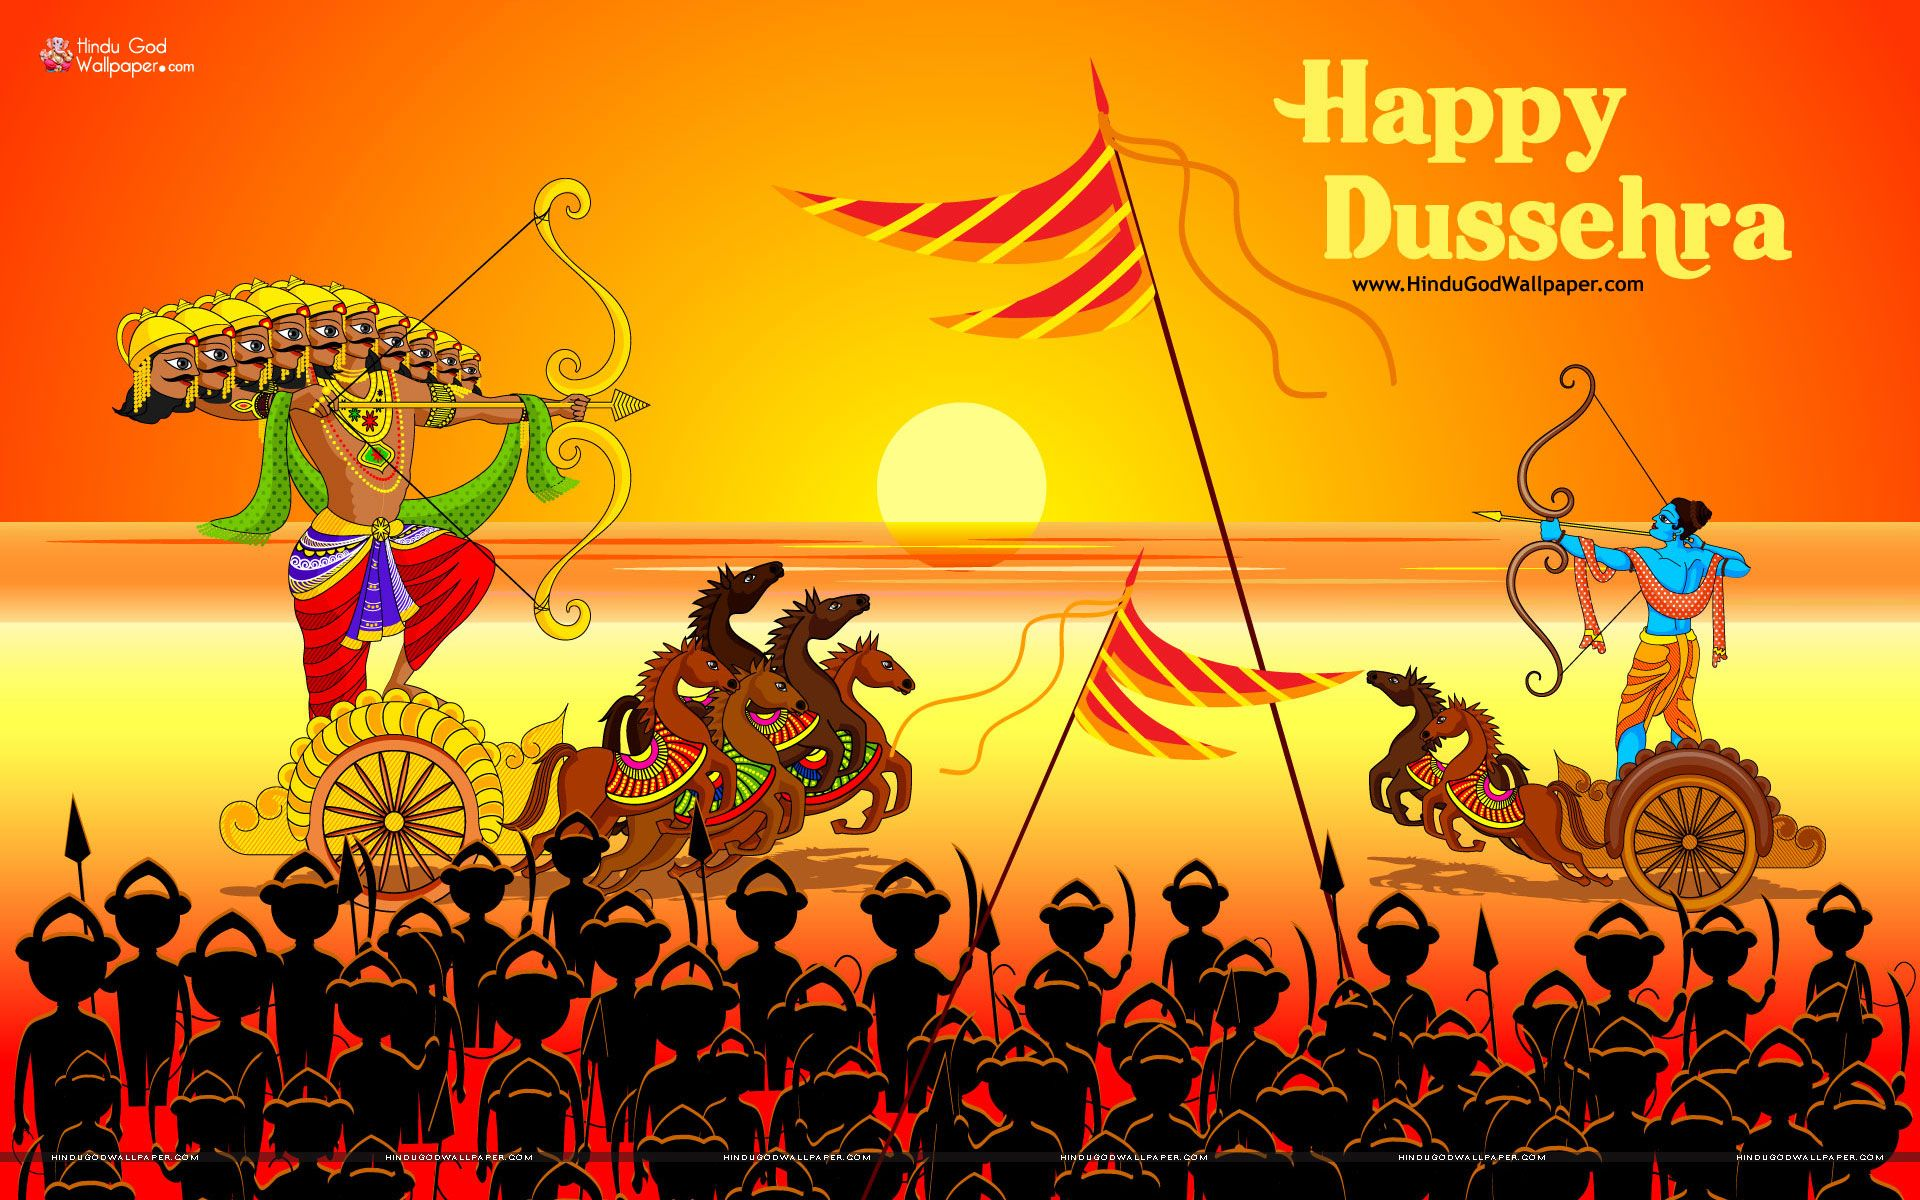 dussehra hd wallpapers photos images download dussehra wallpapers dussehra images desktop wallpaper calendar dussehra hd wallpapers photos images